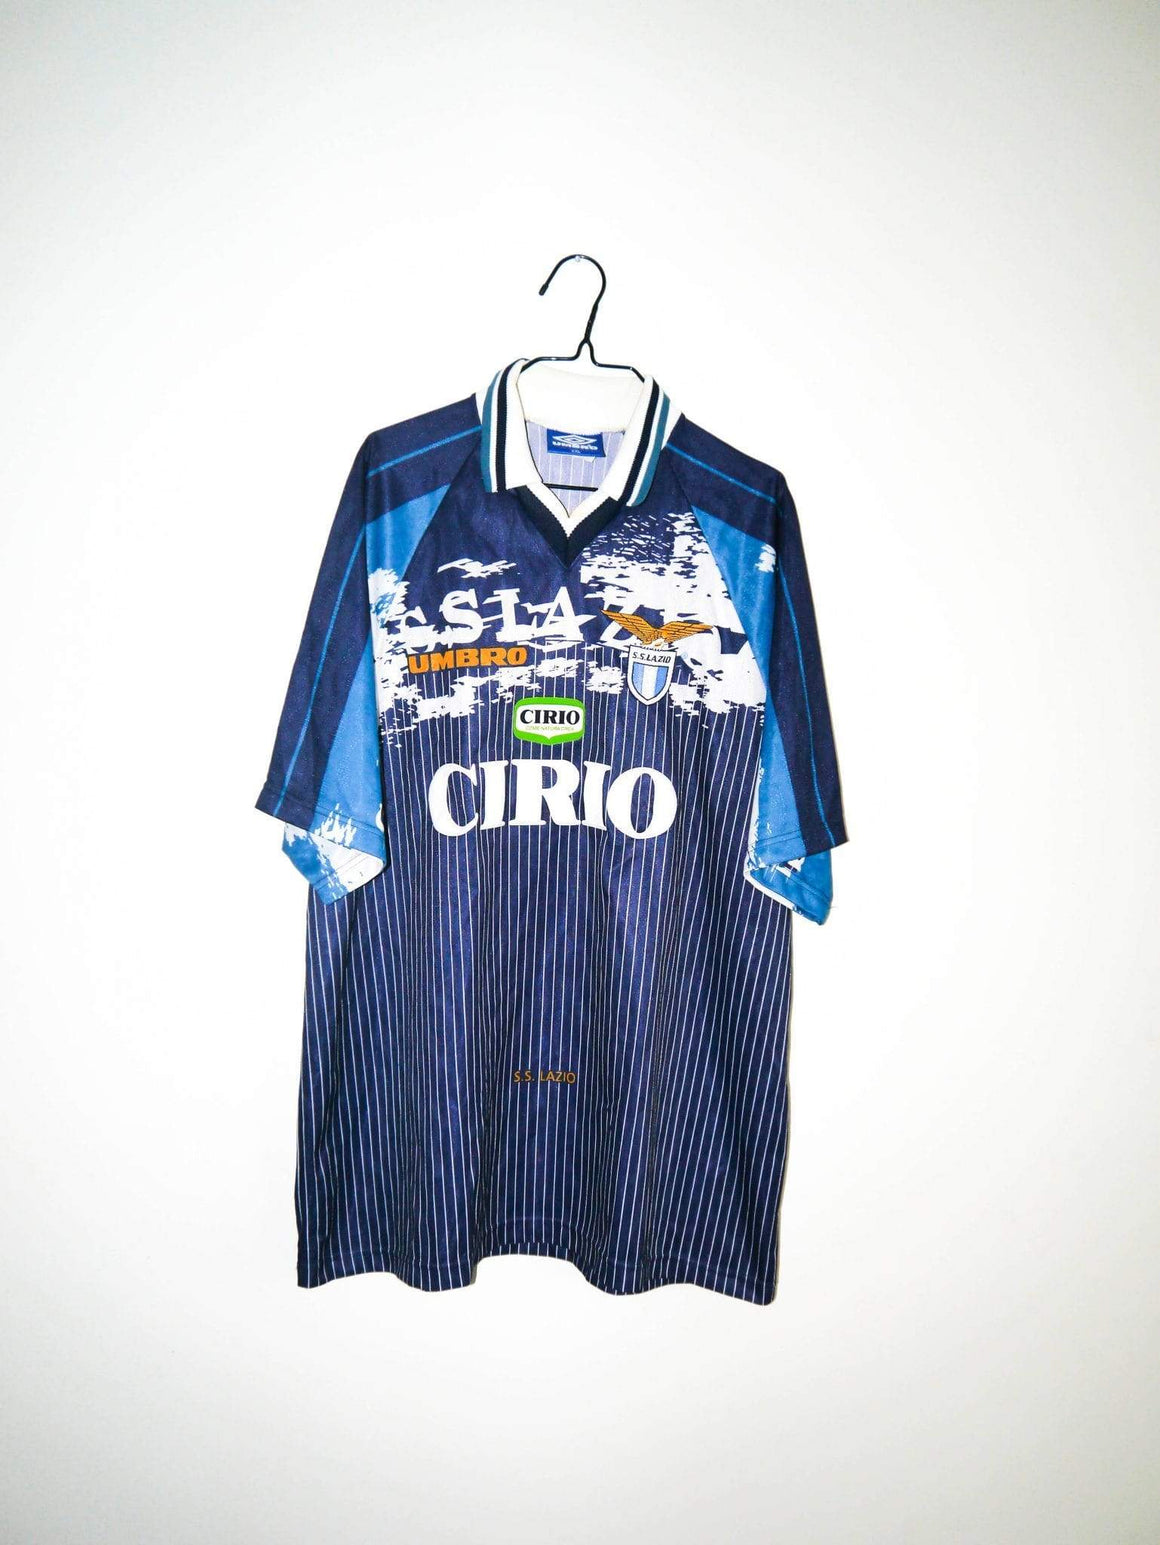 1996 1998 Lazio Roma away shirt - XL - Football Shirt Collective